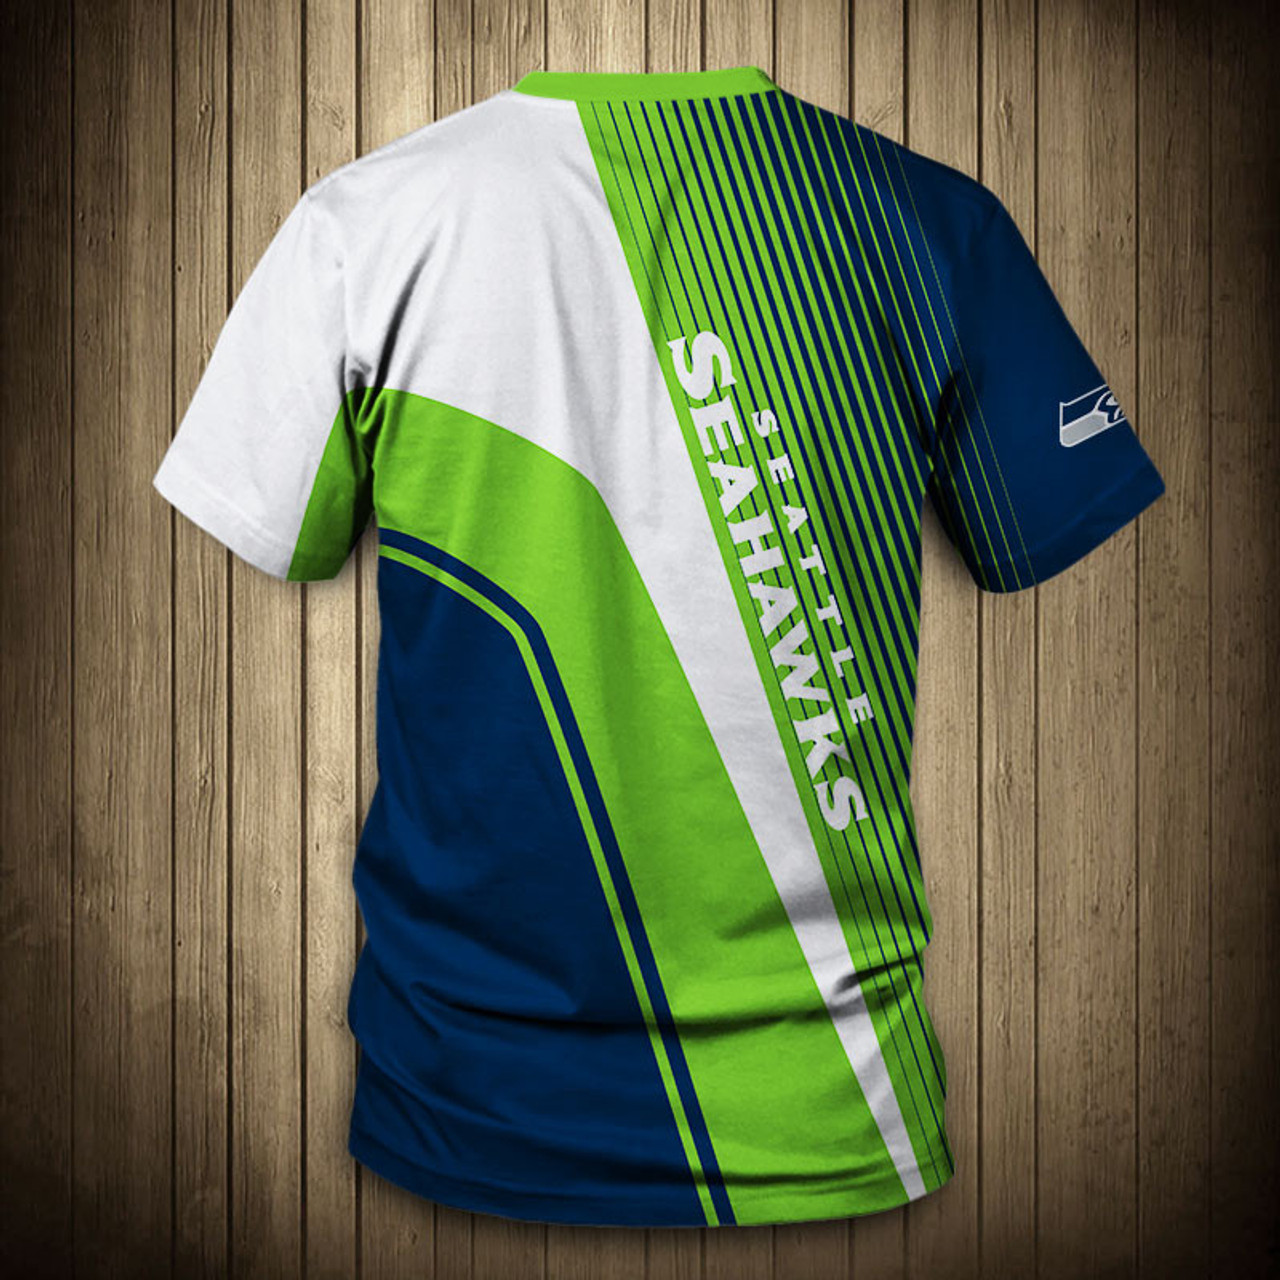 7abff107 **(OFFICIAL-NEW-N.F.L.SEATTLE-SEAHAWKS-TRENDY-TEAM-TEES/CUSTOM-3D-SEAHAWKS-OFFICIAL-LOGOS  & OFFICIAL-CLASSIC-SEAHAWKS-TEAM-COLORS/DETAILED-3D-GRAPHIC-...